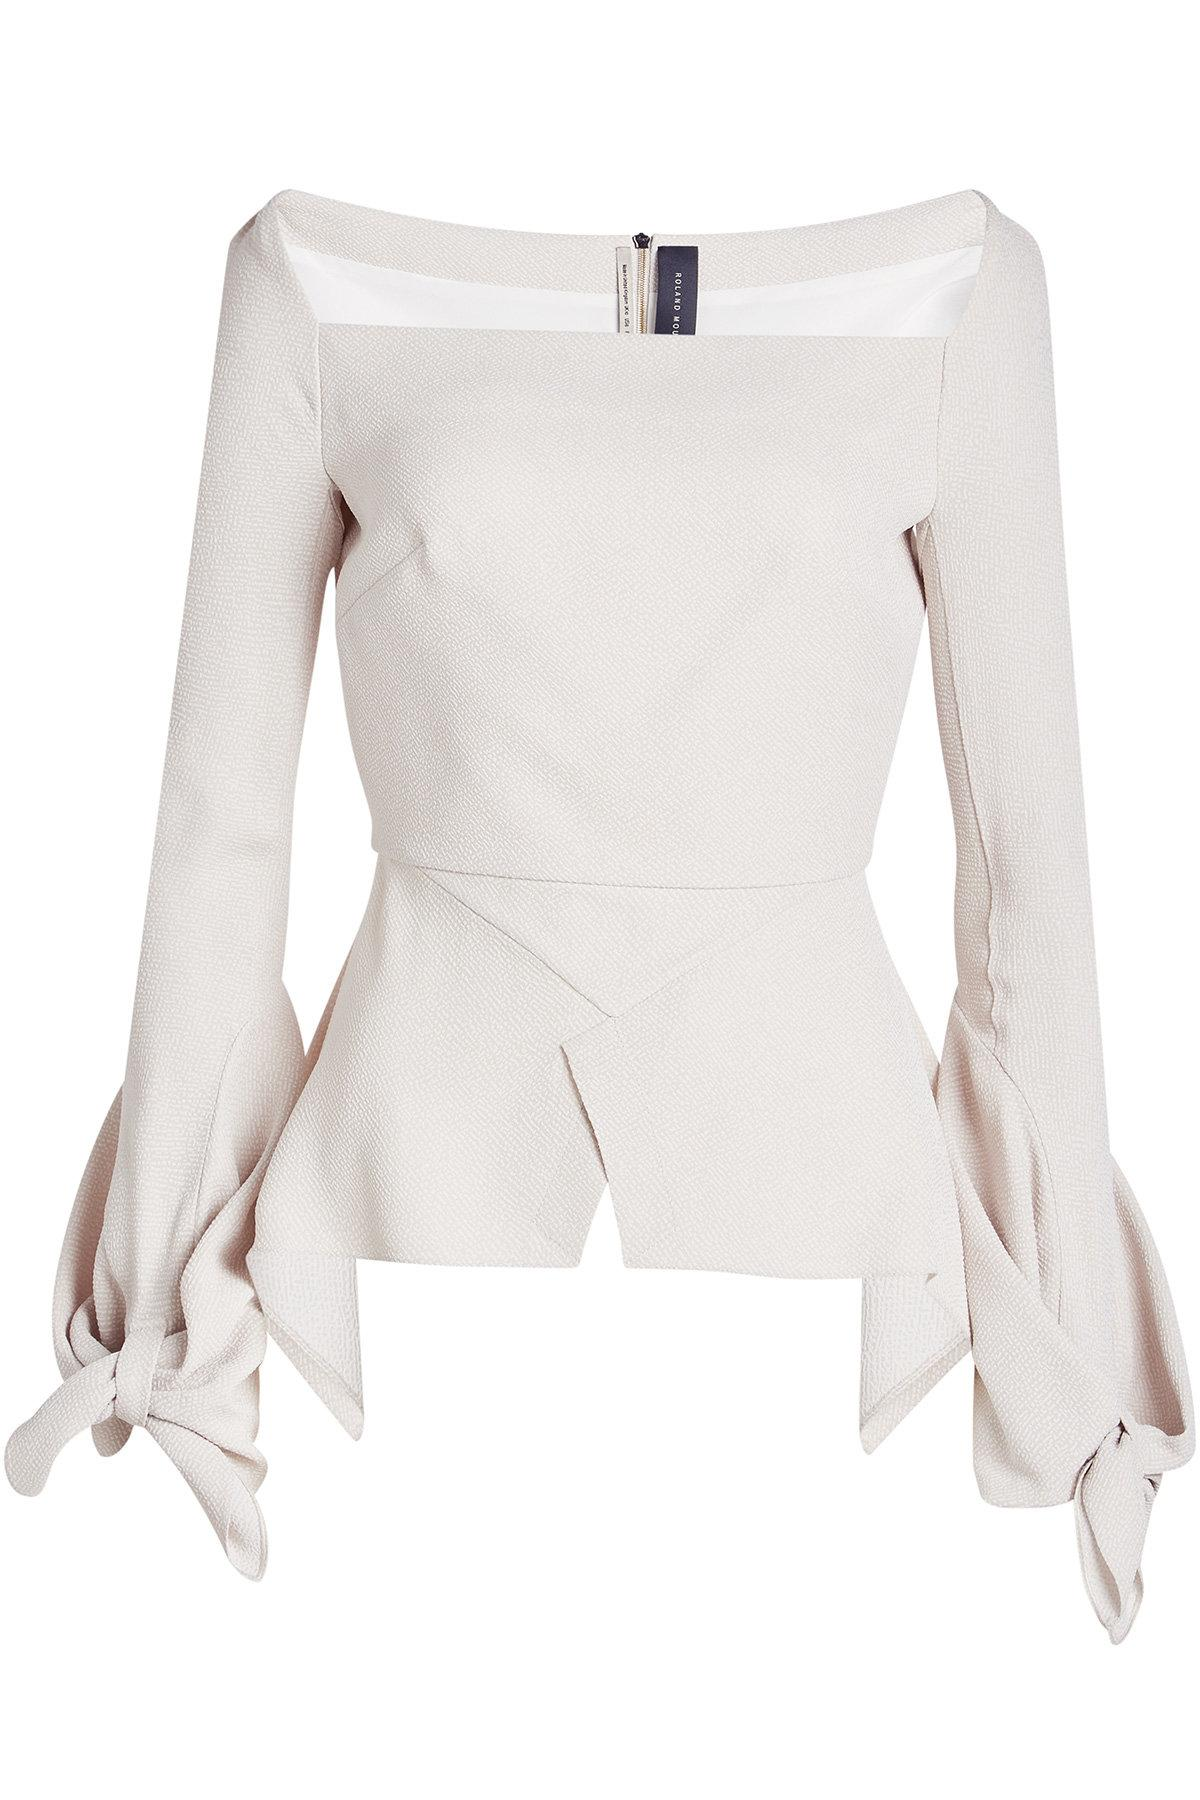 Roland Mouret Wicklow Textured Top In Beige